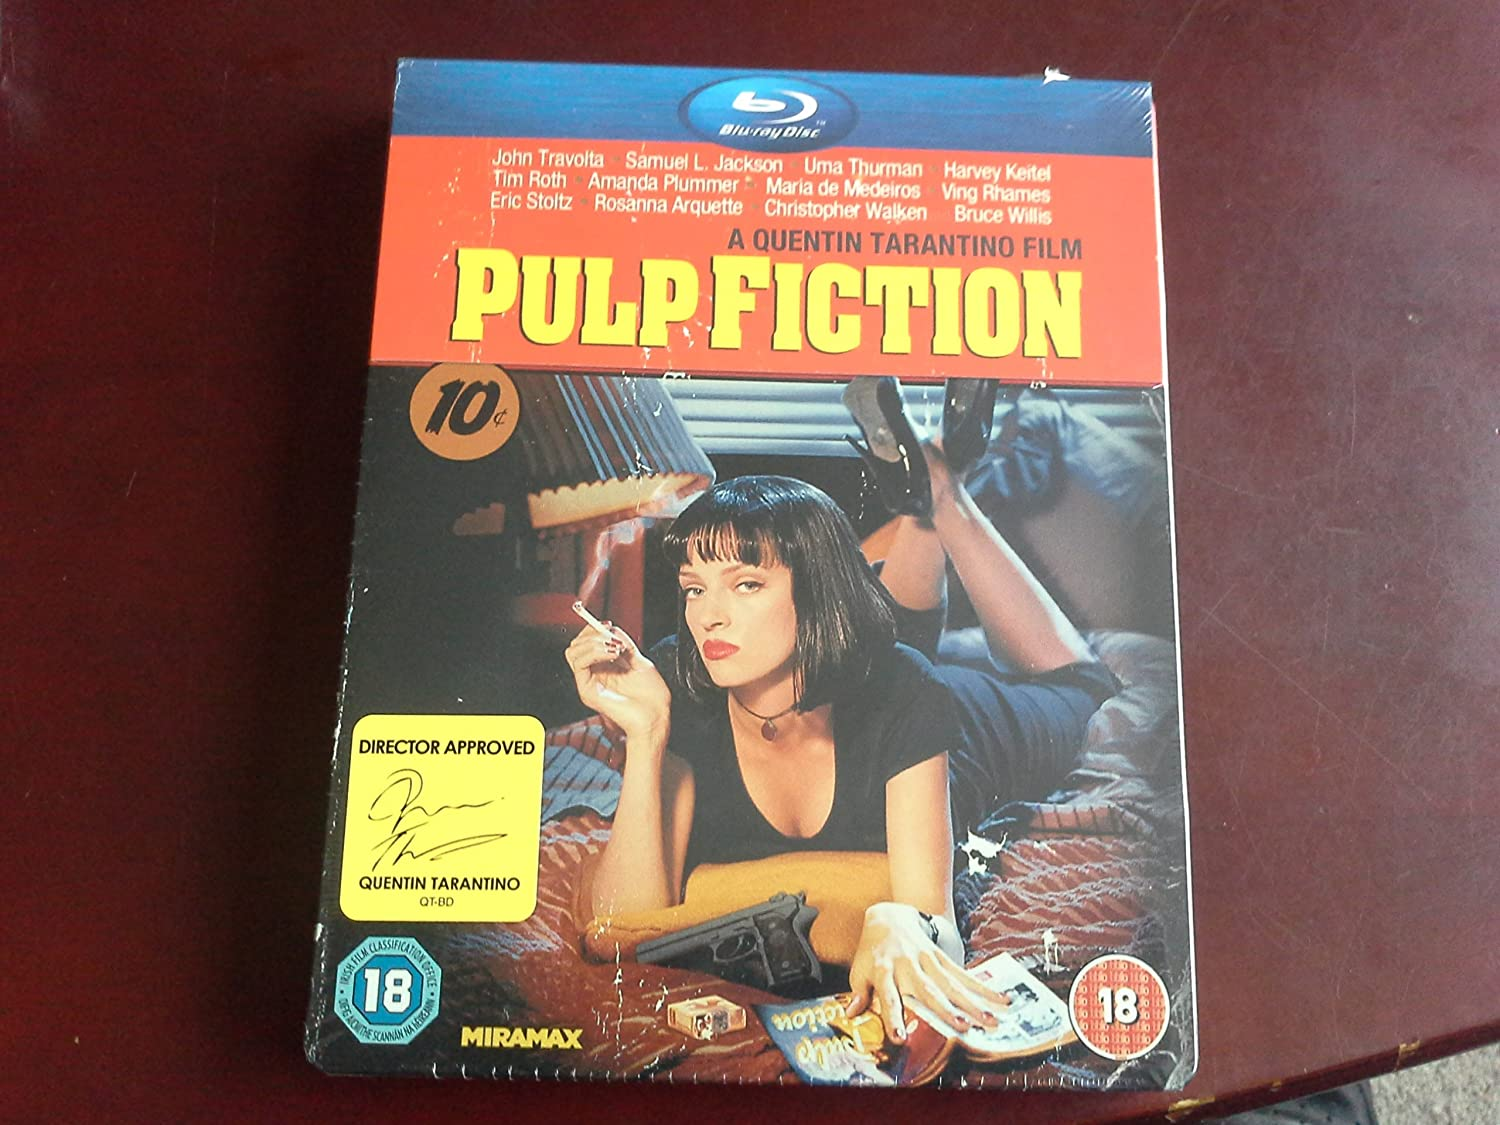 pulp fiction limited edition play.com blu ray steelbook: Amazon.es: Cine y Series TV